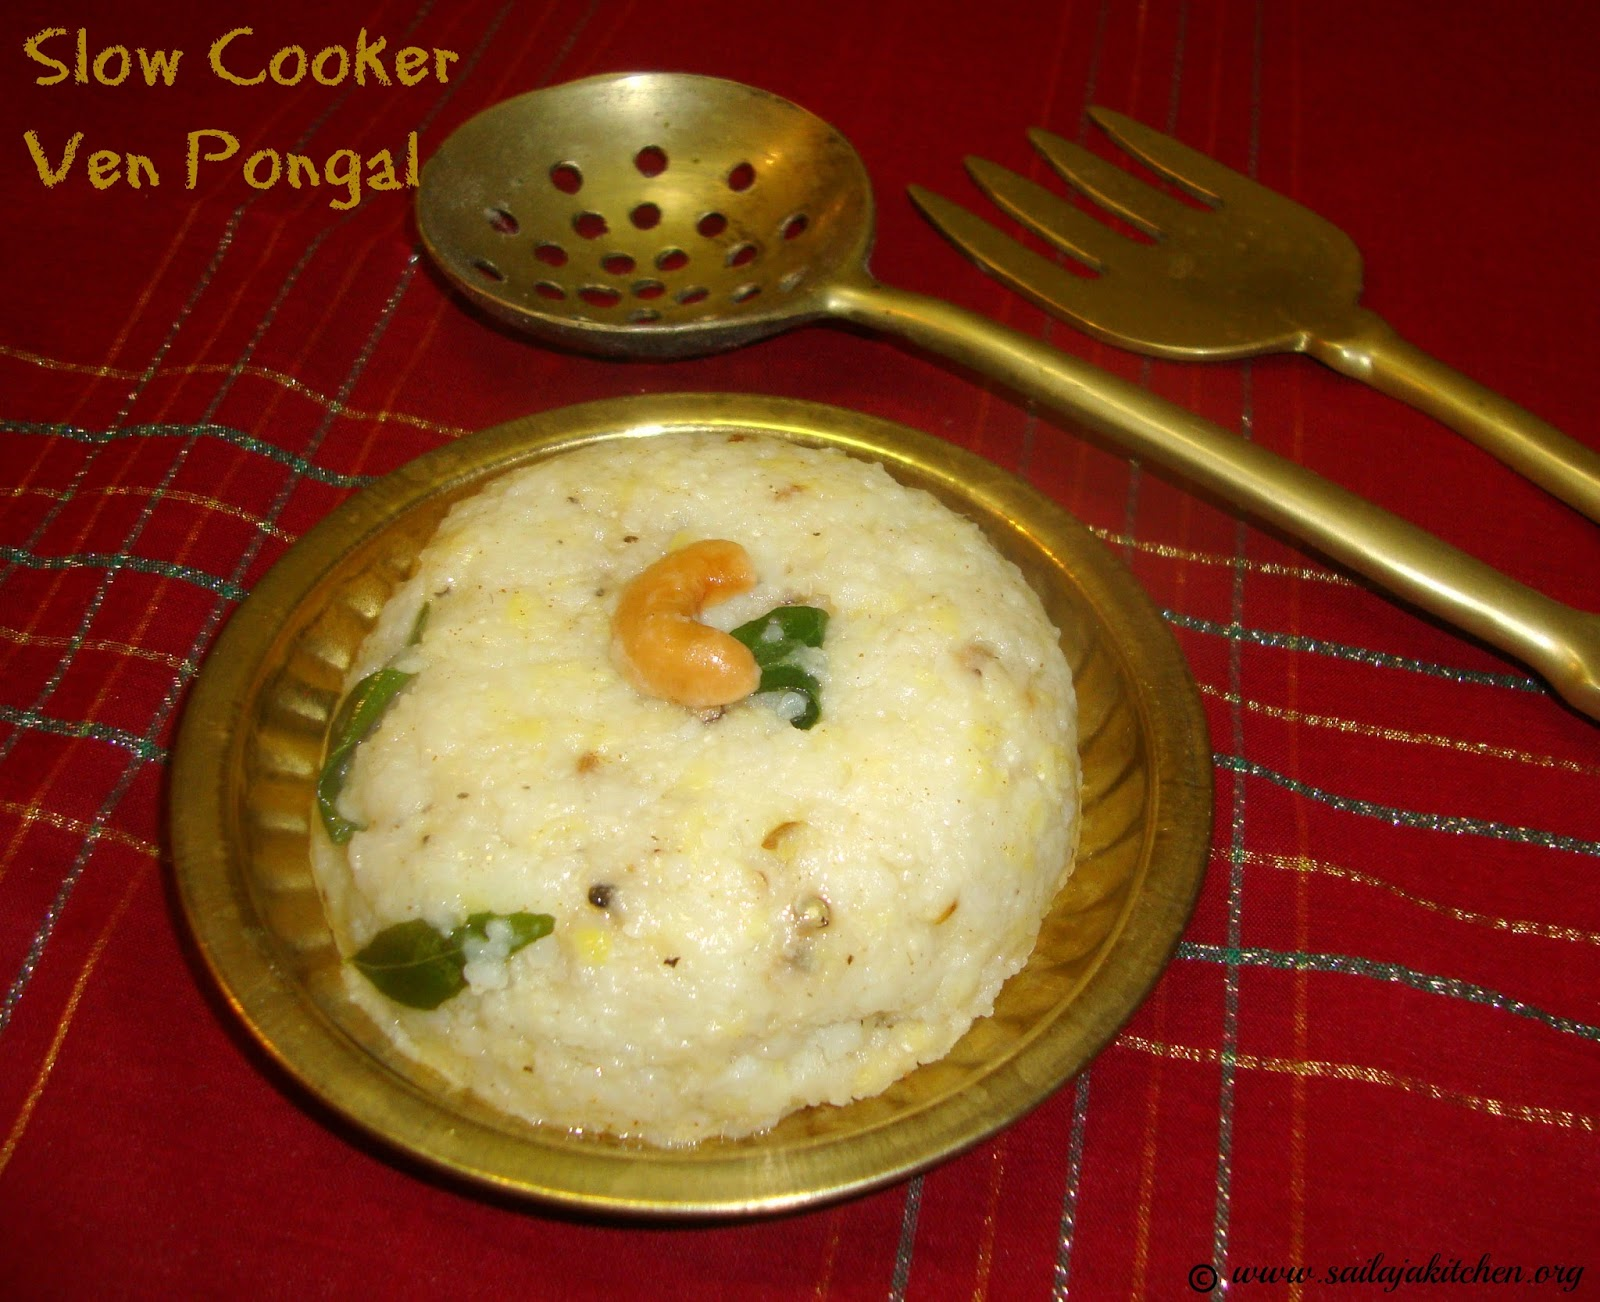 Sailaja kitchena site for all food lovers ven pongal in slow ven pongal in slow cooker slow cooker pongal recipe pongal in crock pot slow cooker indian recipes slow cooker recipes forumfinder Image collections